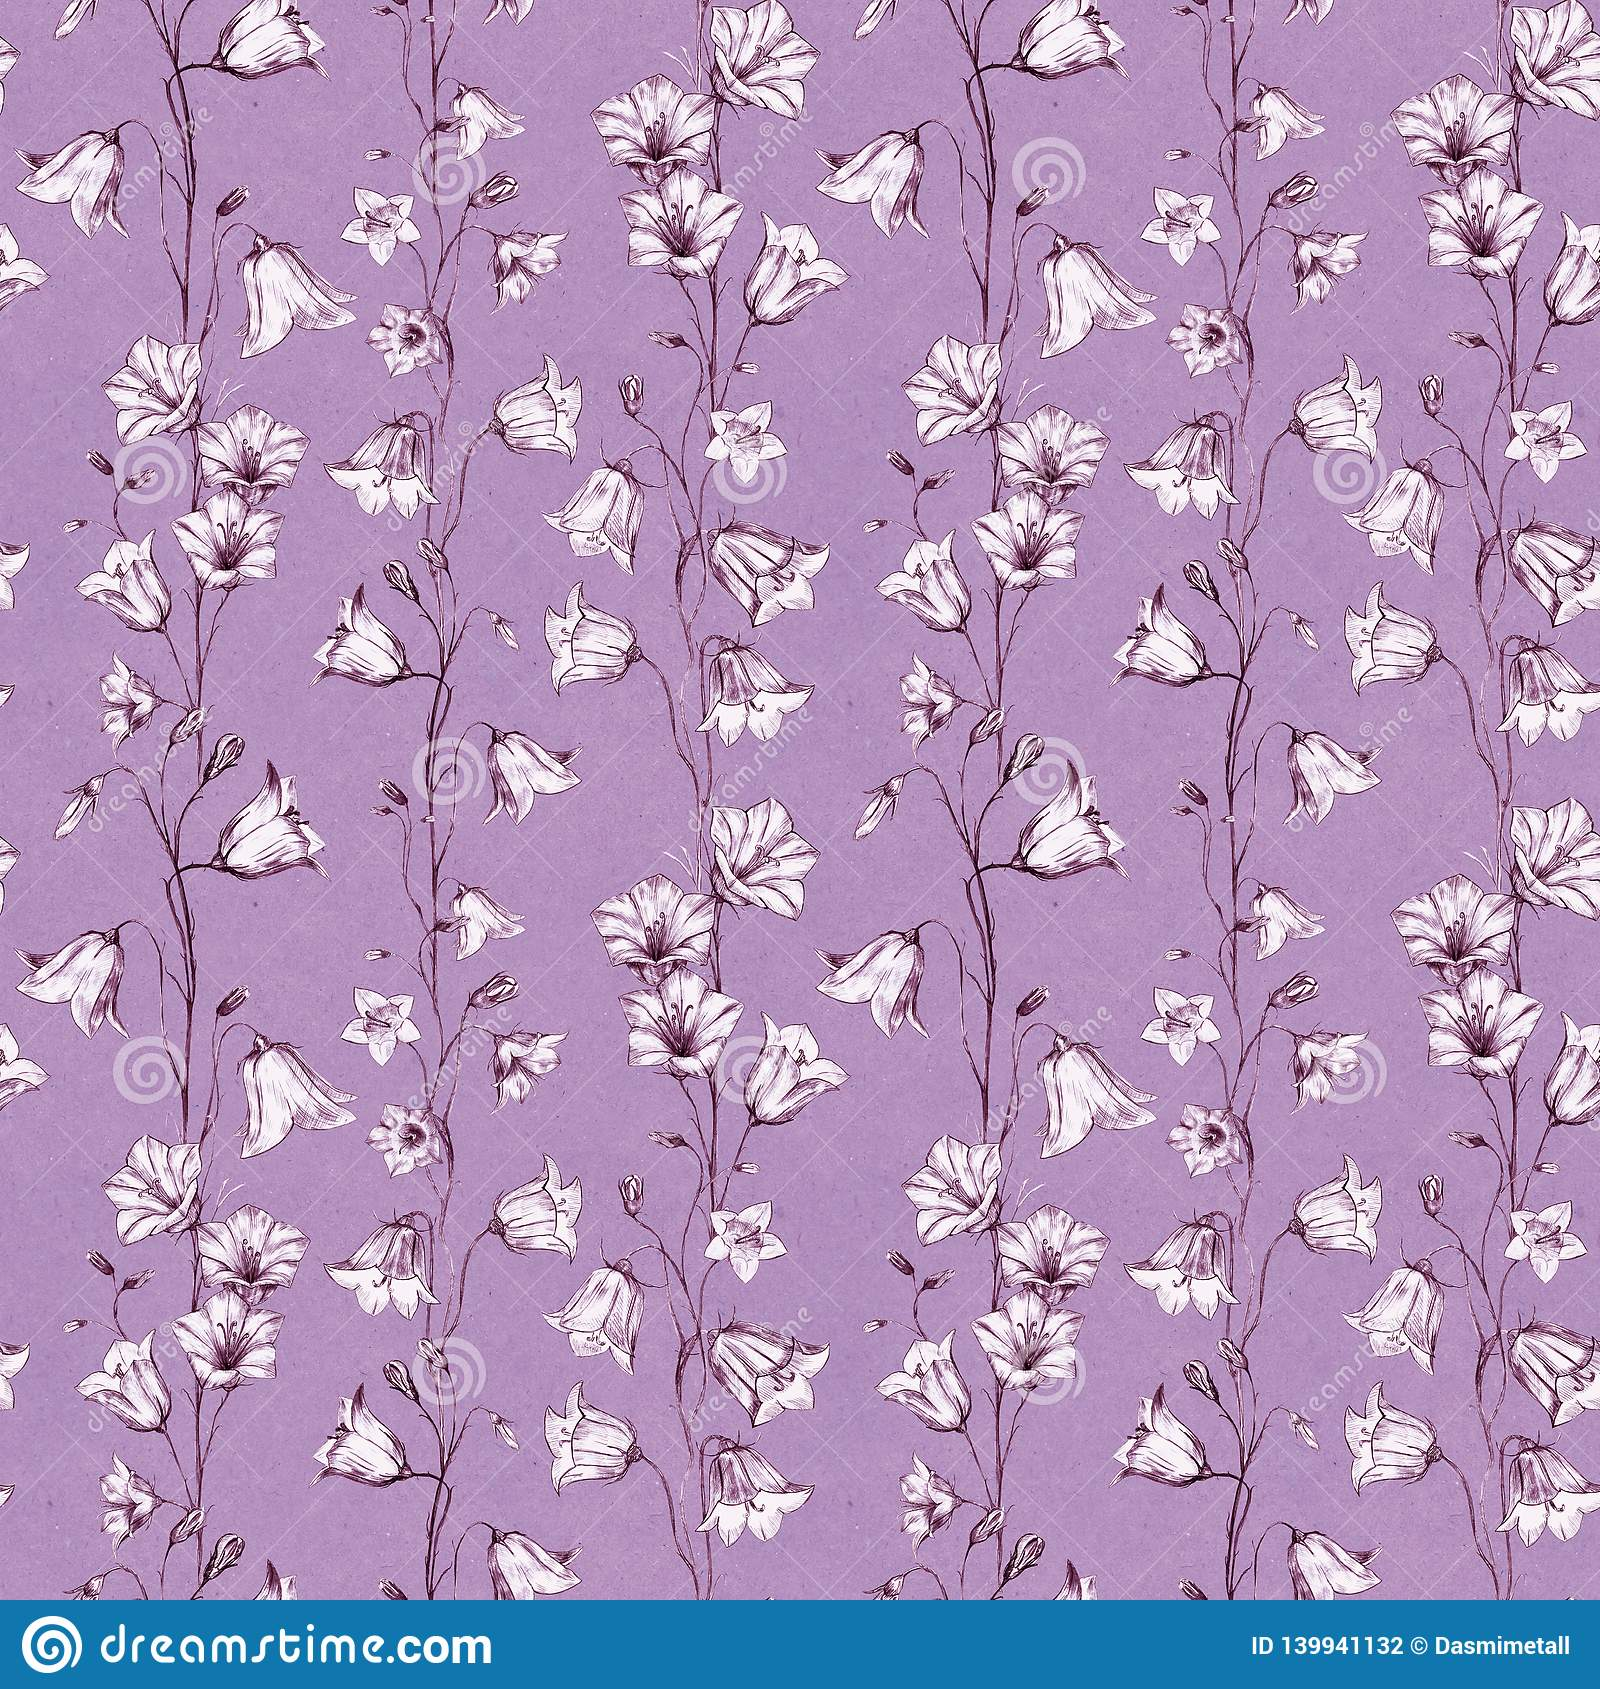 Hand drawn floral seamless pattern background with pink and white graphic bluebell flowers on dust pink craft paper